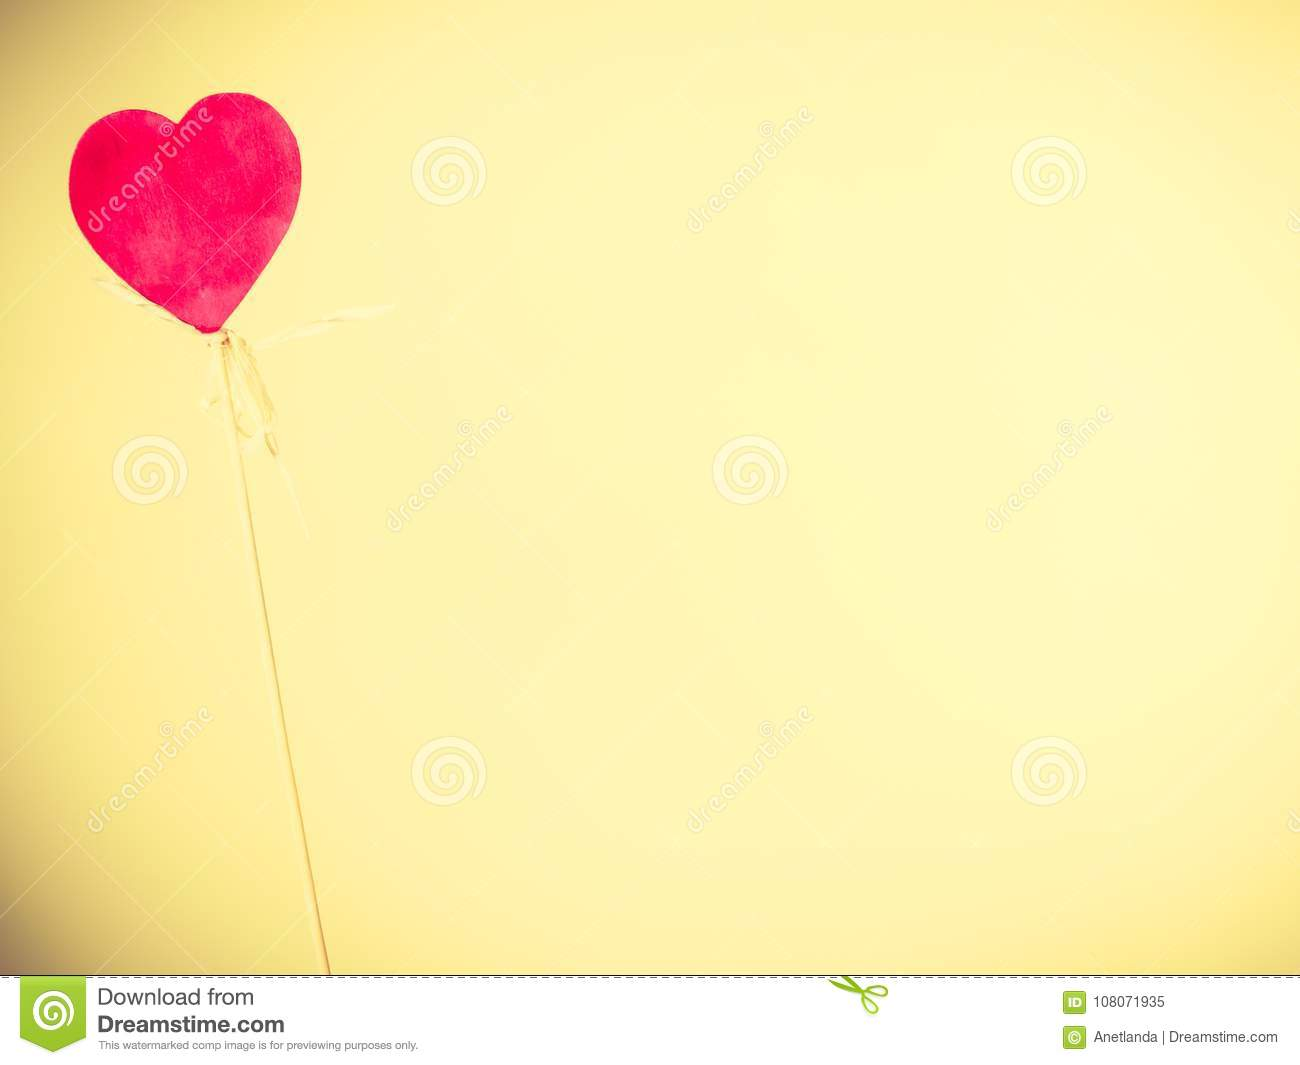 Lonely Heart On Pole Stock Image Image Of Expression 108071935